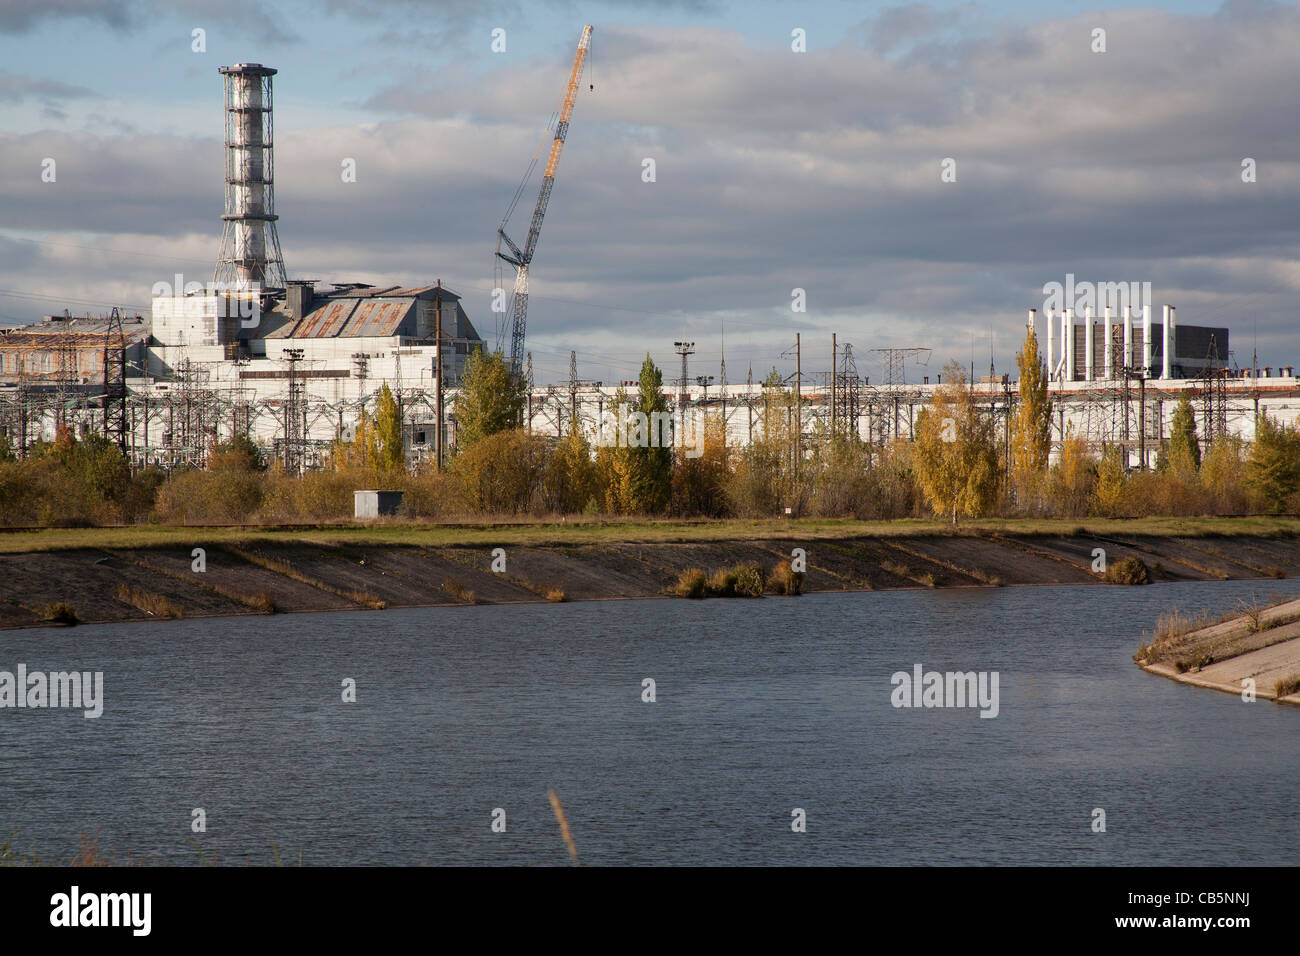 The Pripyat River or Prypiat River with the Chernobyl nuclear power plant in the background Chernobyl Ukraine - Stock Image